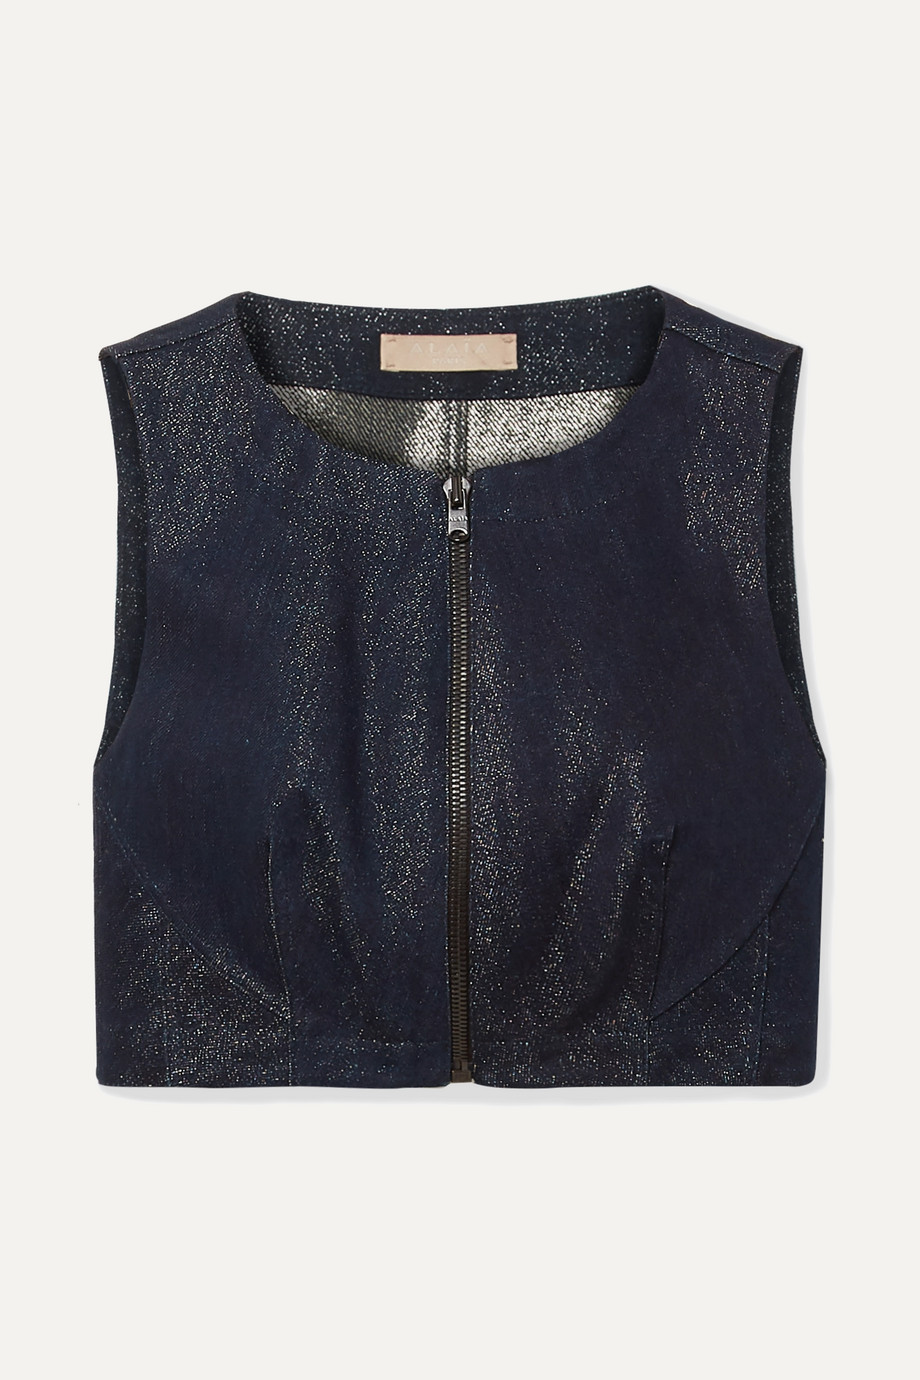 Alaïa Cropped metallic denim top